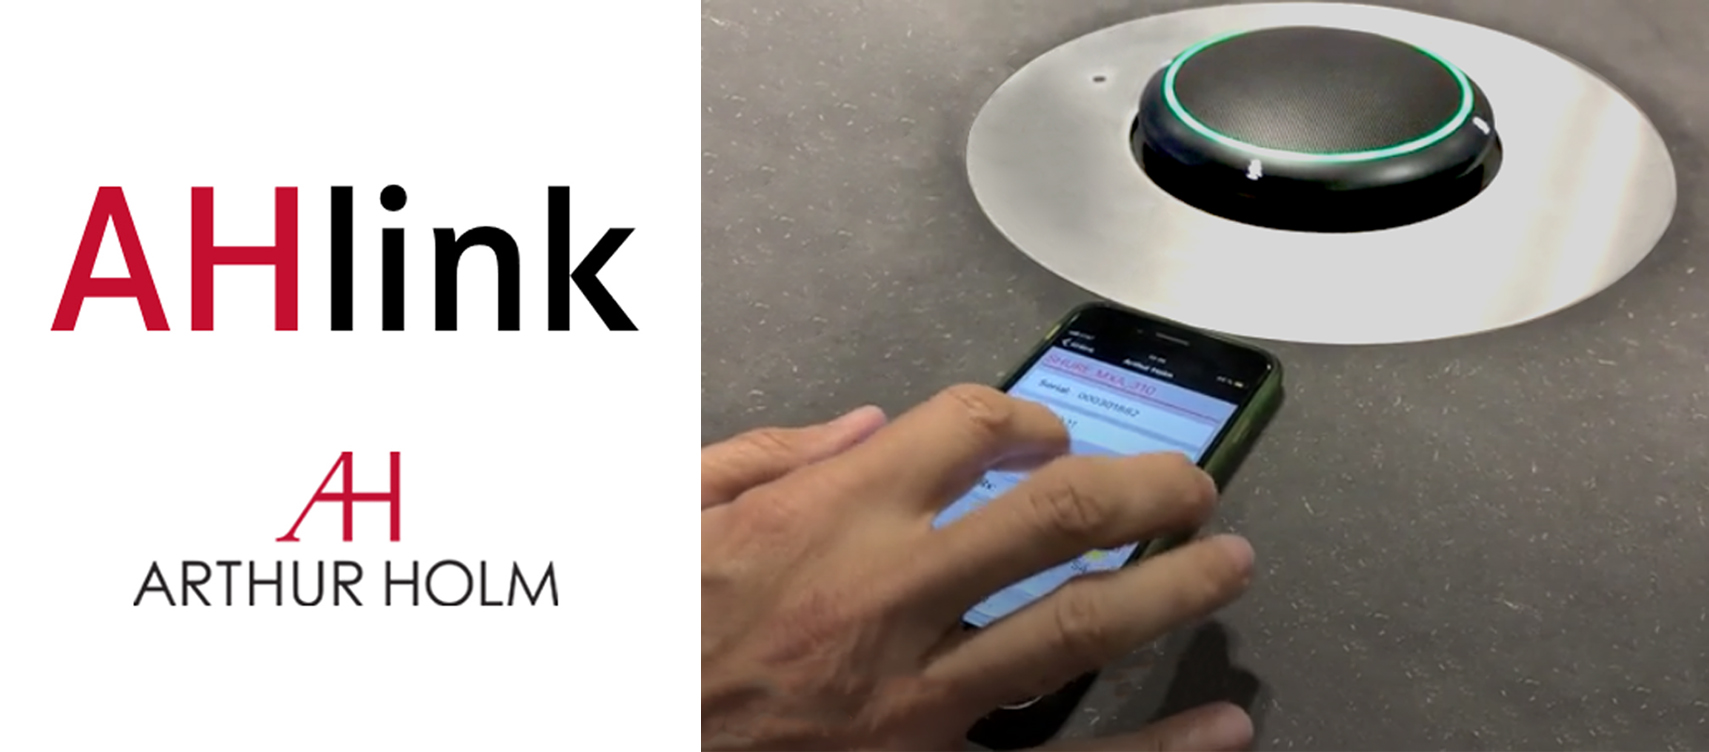 AHlink turns your mobile device into a tool to setup and configure your meeting room!